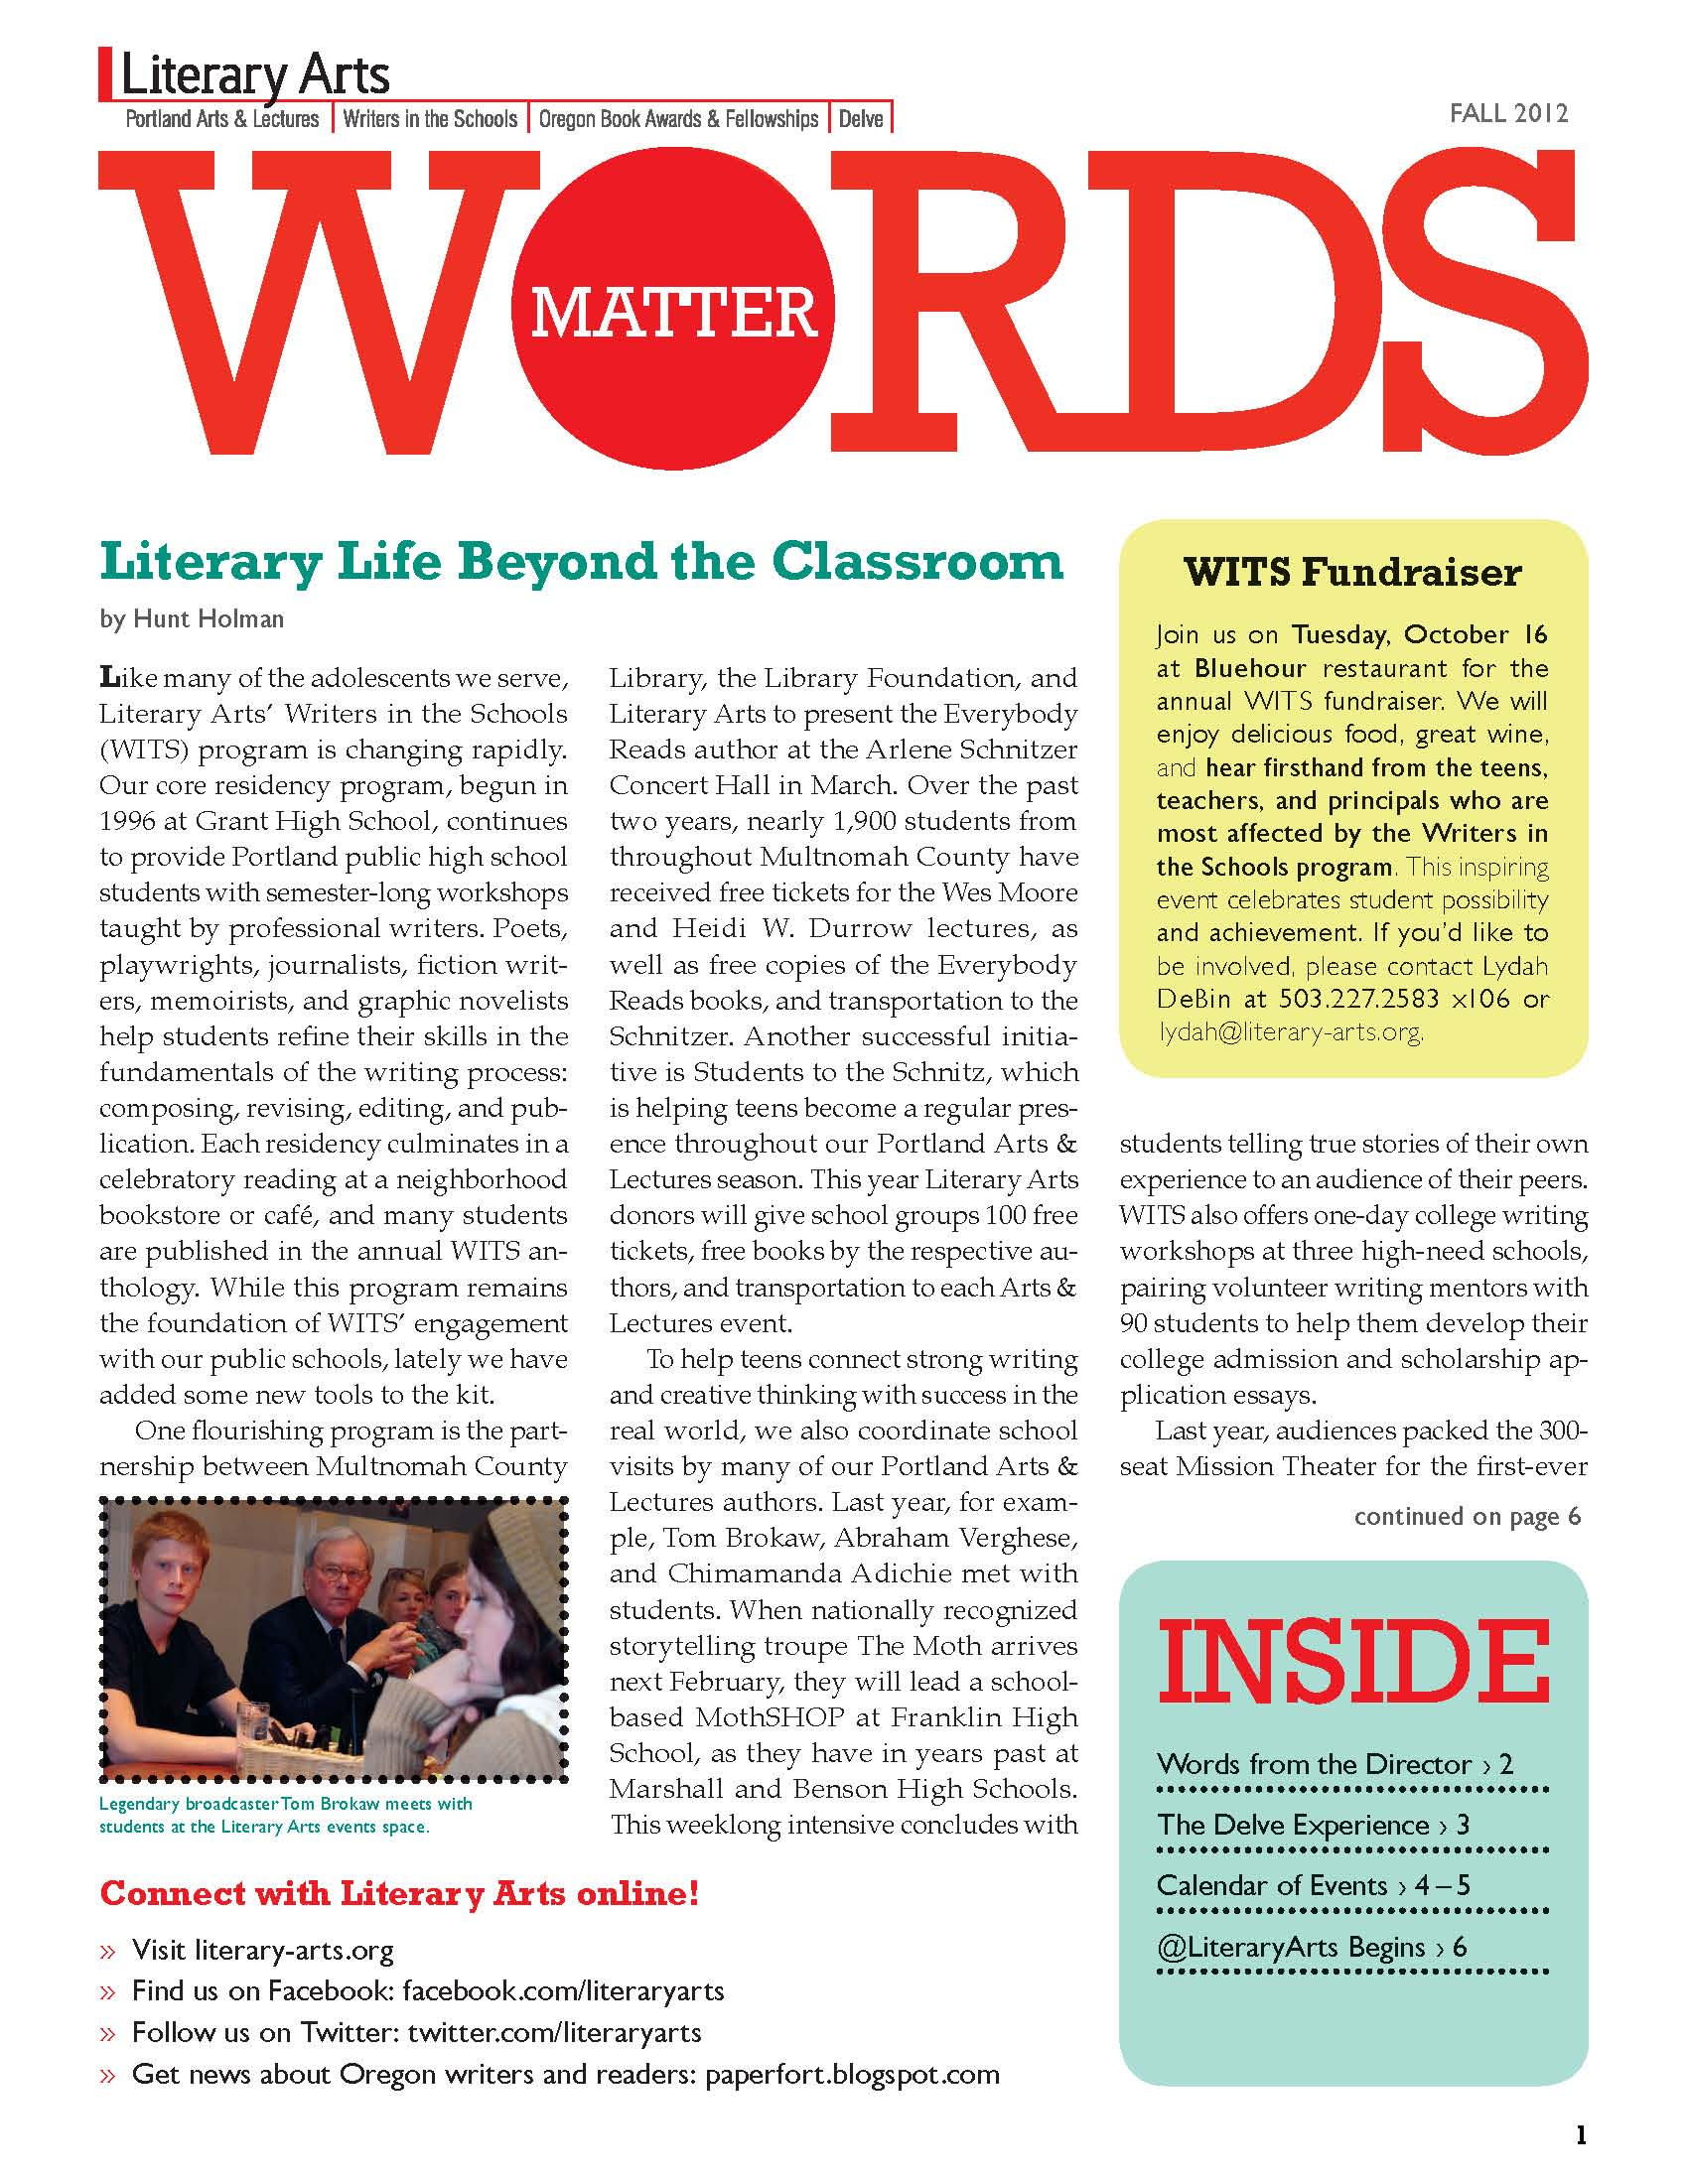 Samples of the Literary Arts 2012 newsletter